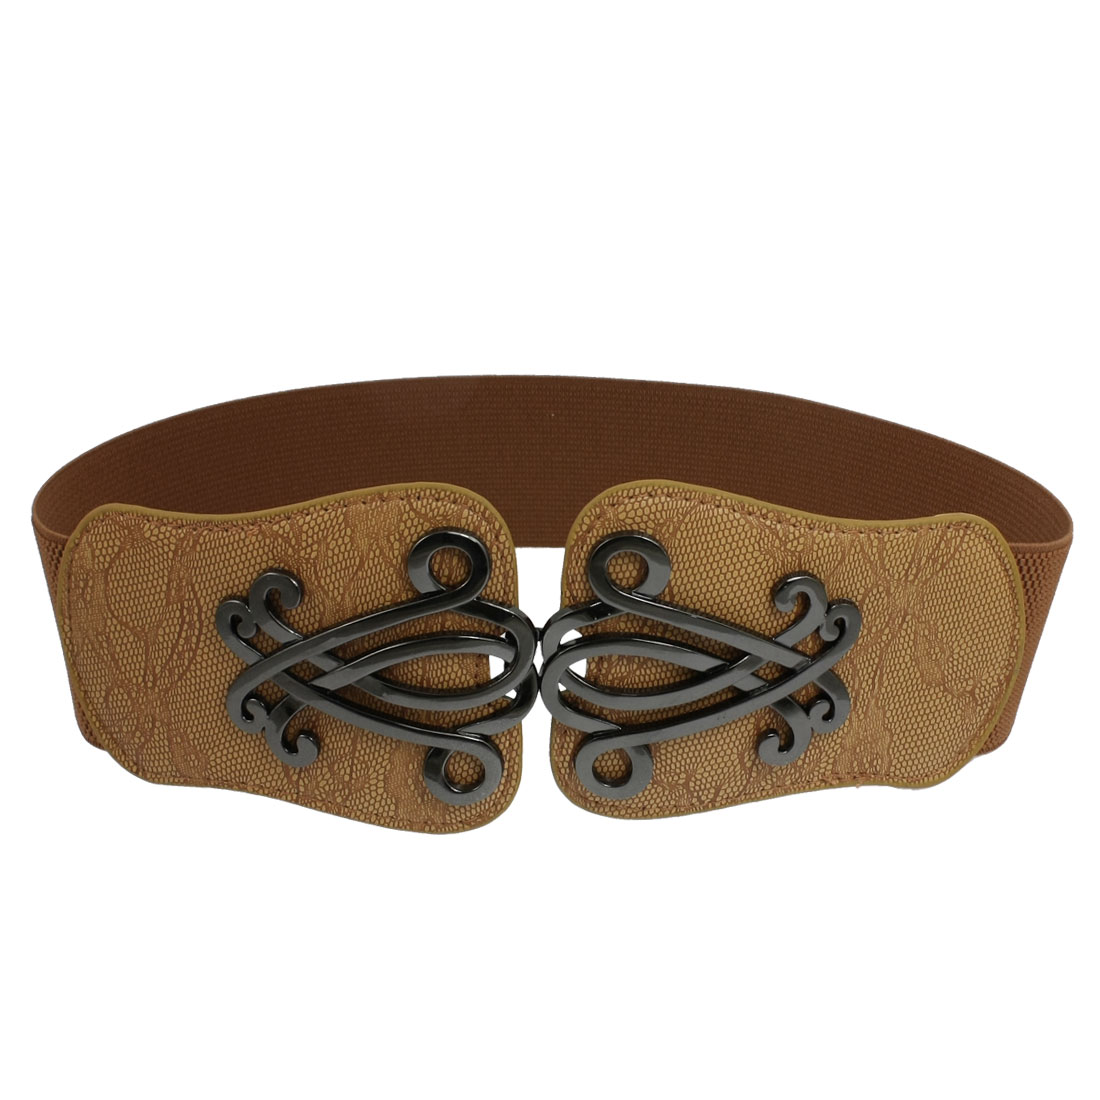 "2.4"" Wide Metal Flower Decor Faux Leather Stretchy Cinch Belt for Woman"